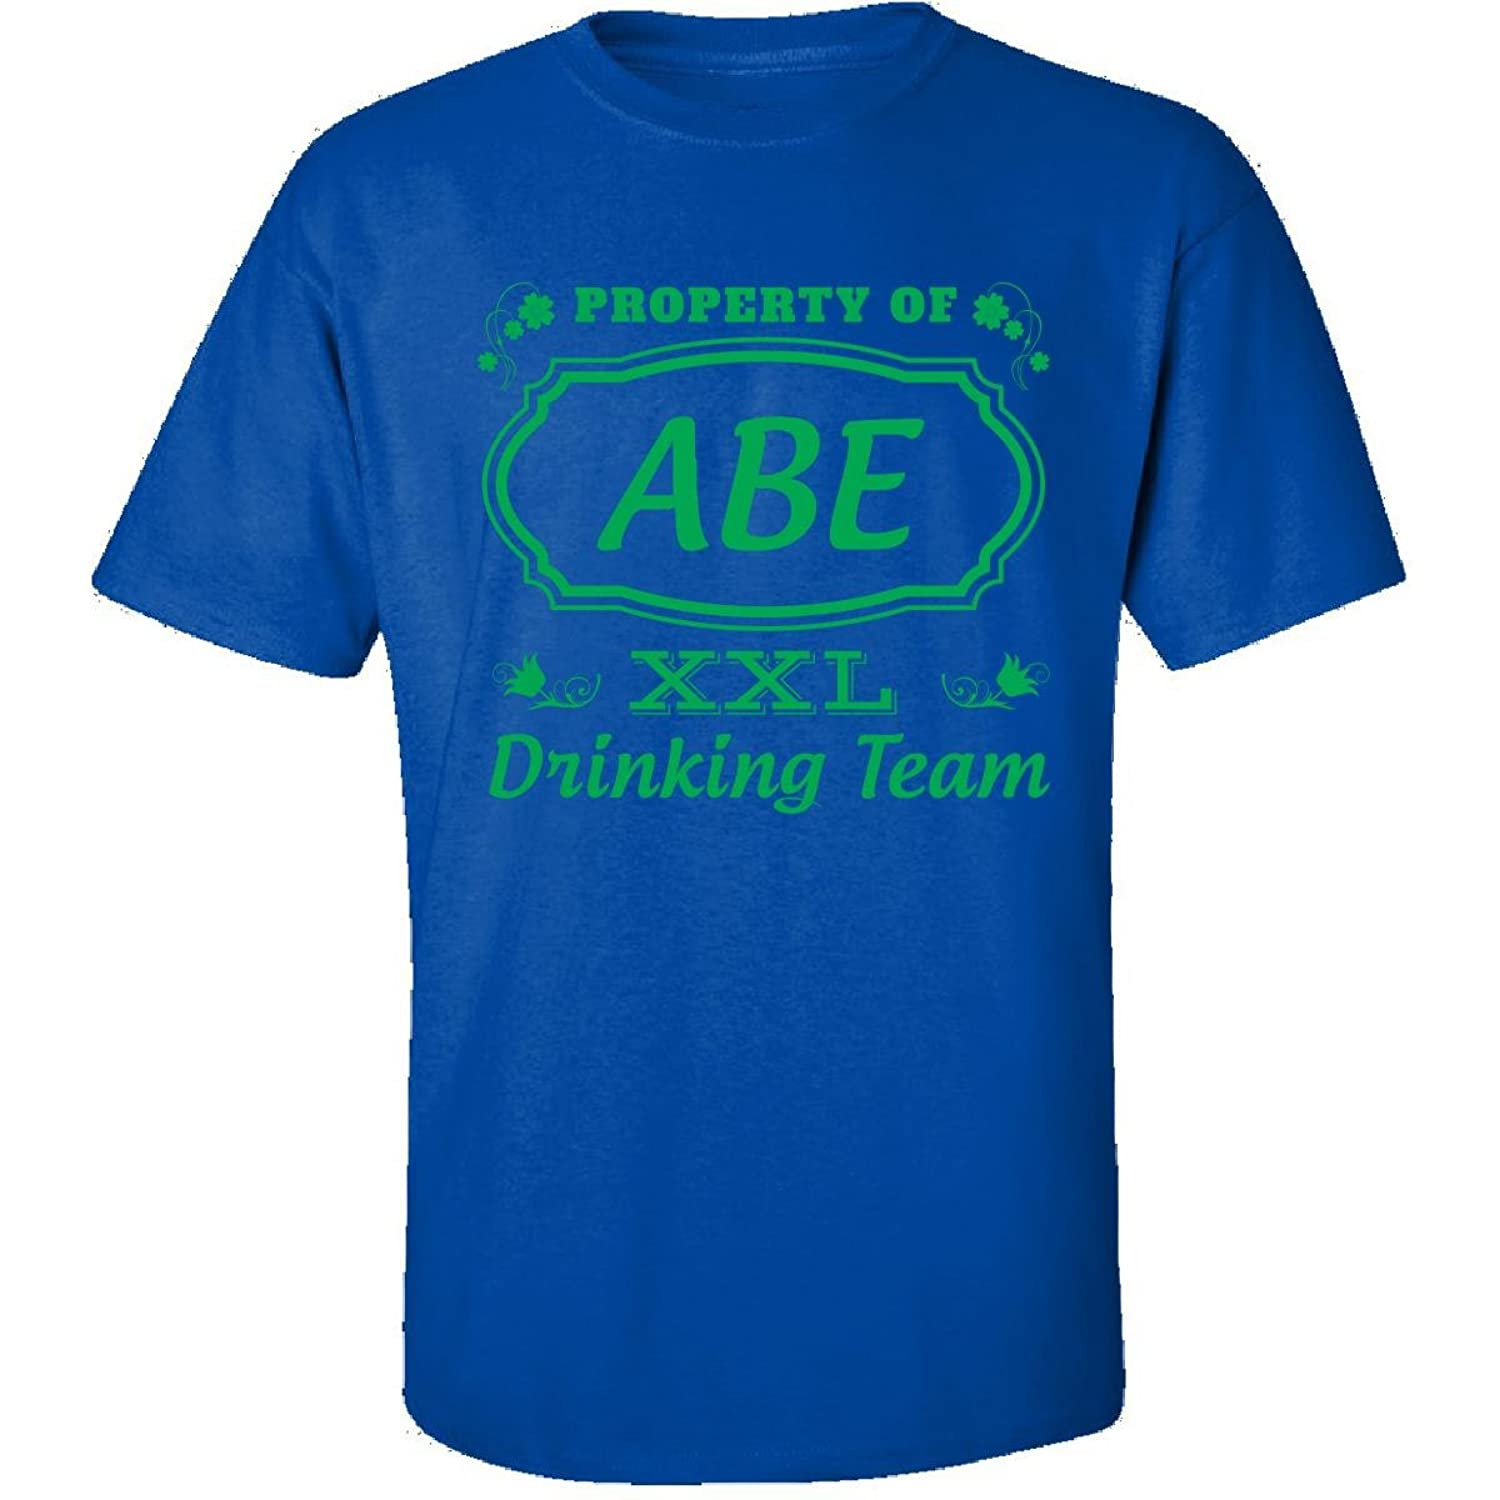 Property Of Abe St Patrick Day Beer Drinking Team - Adult Shirt